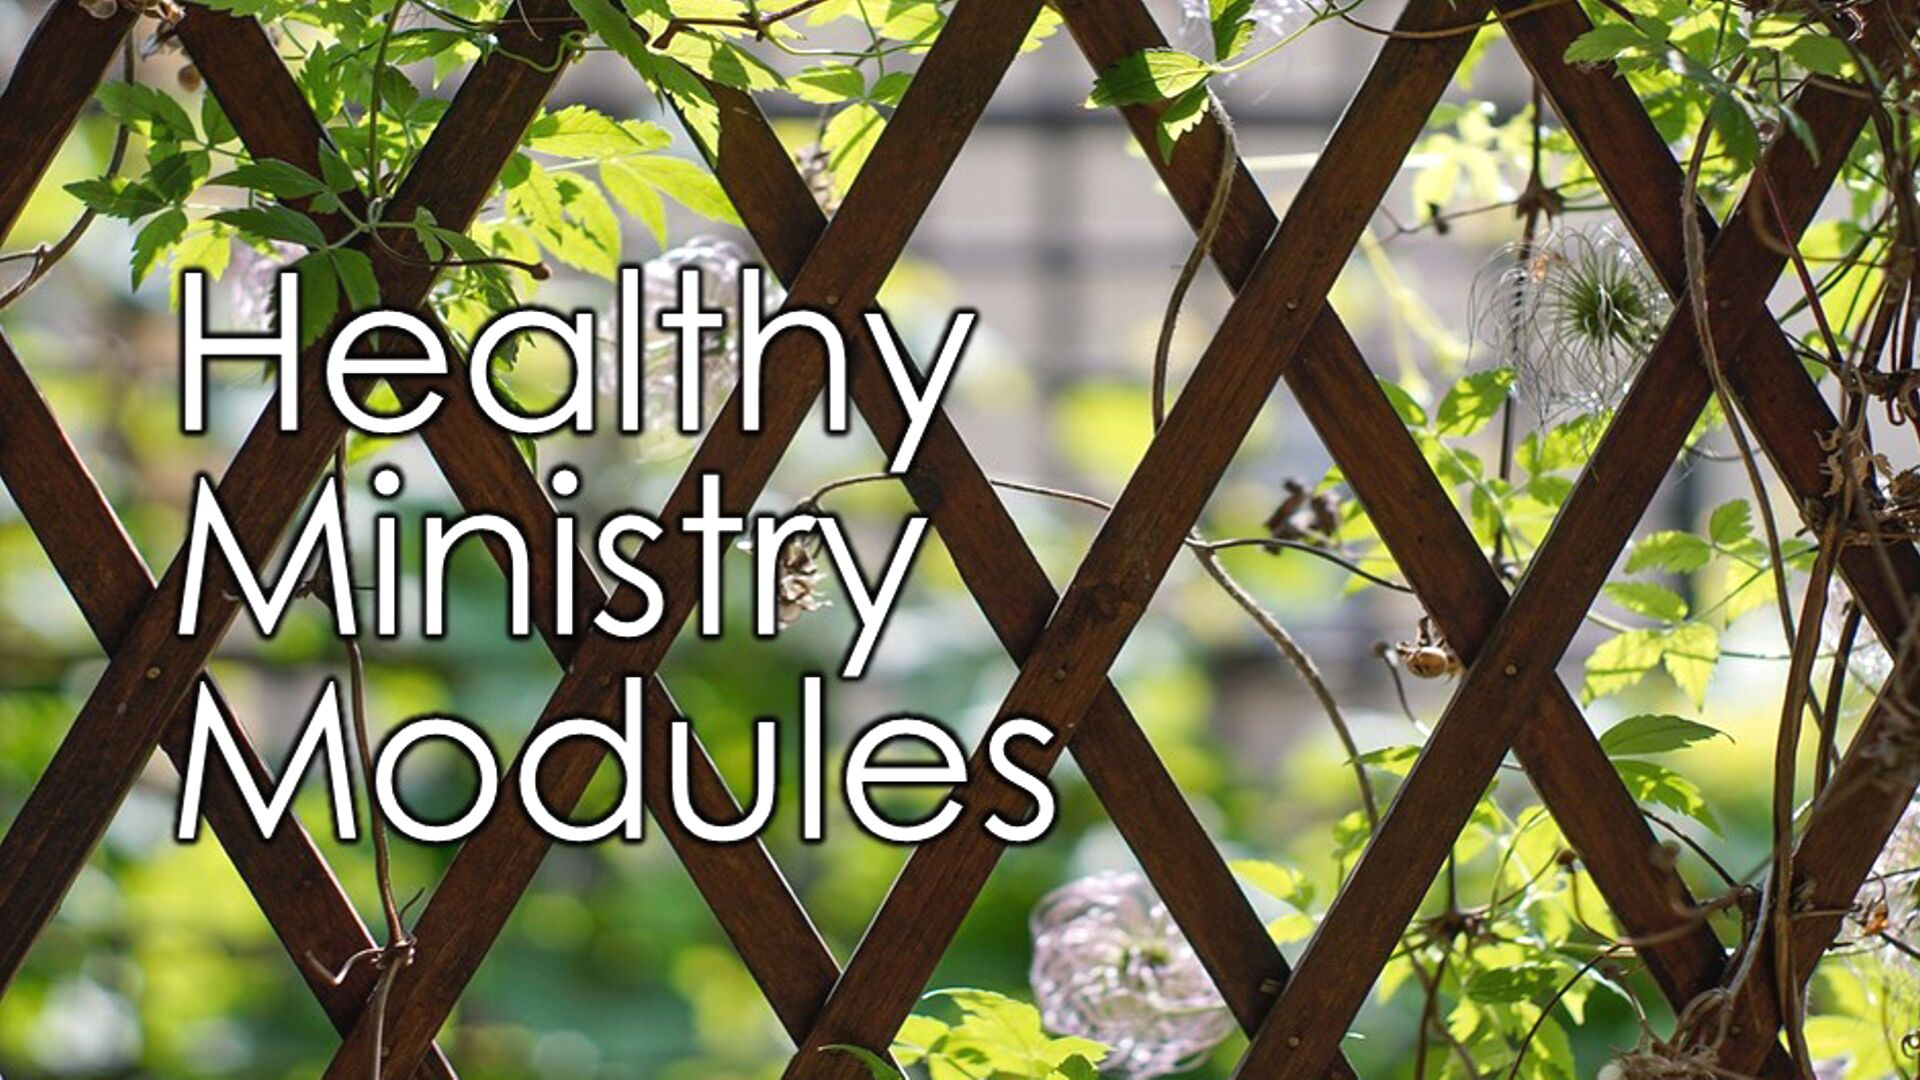 healthy ministry modules web banner.png